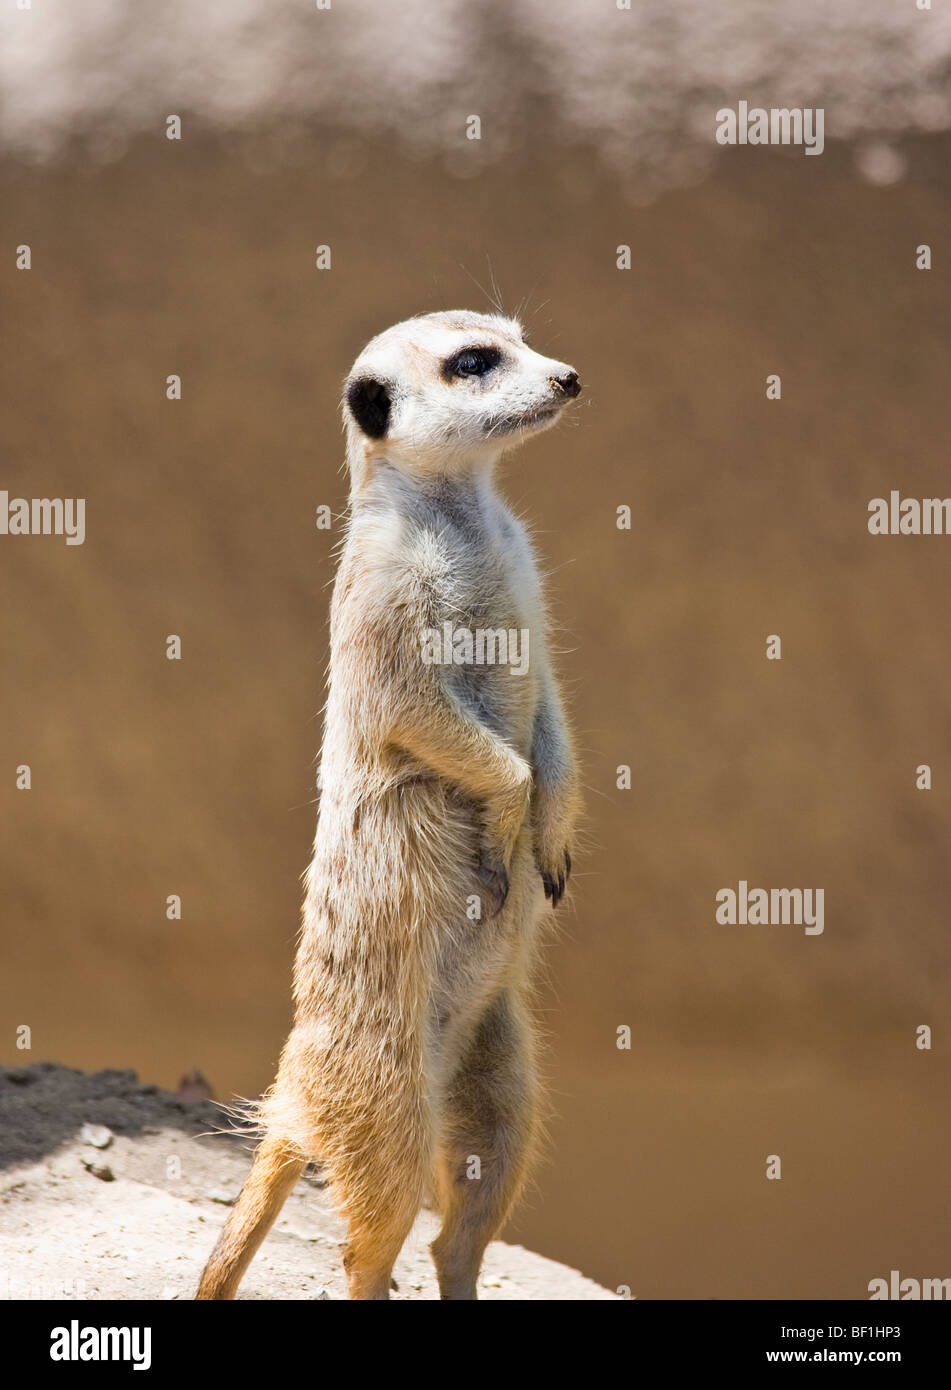 An 'African' 'Meerkat' 'standing tall' 'at attention' on its 'hind legs.' - Stock Image